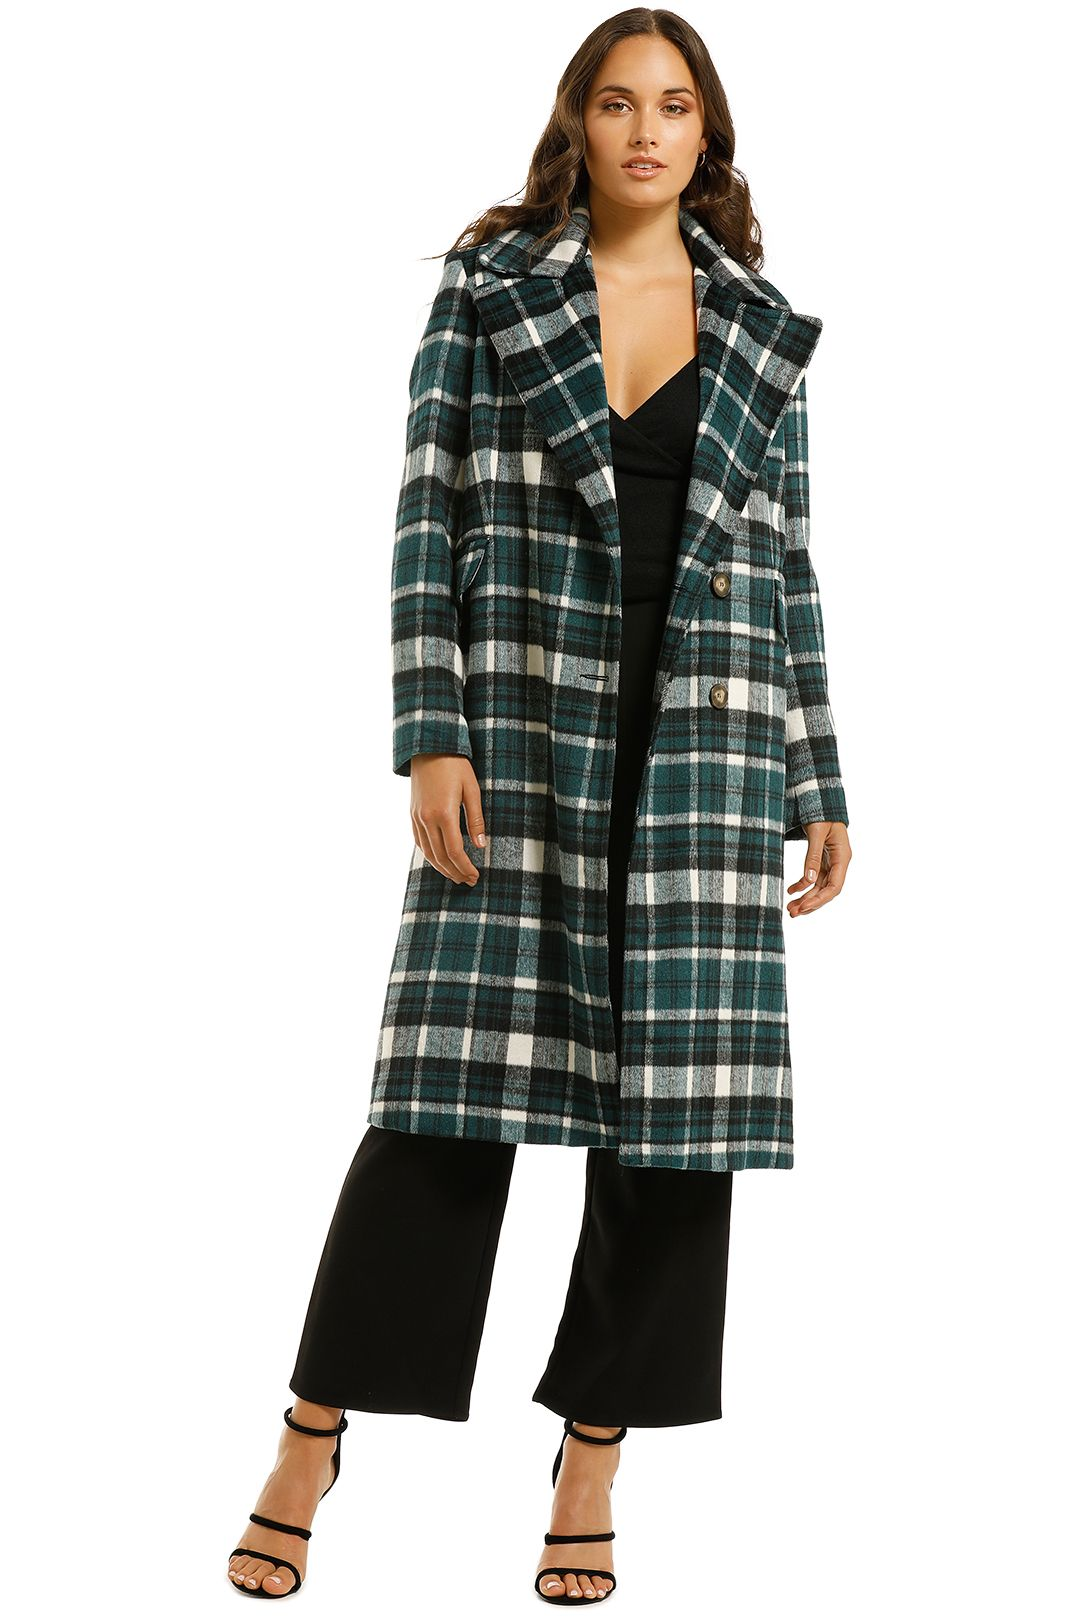 Curate-by-Trelise-Cooper-Little-Coaty-Midi-Coat-Green-Front